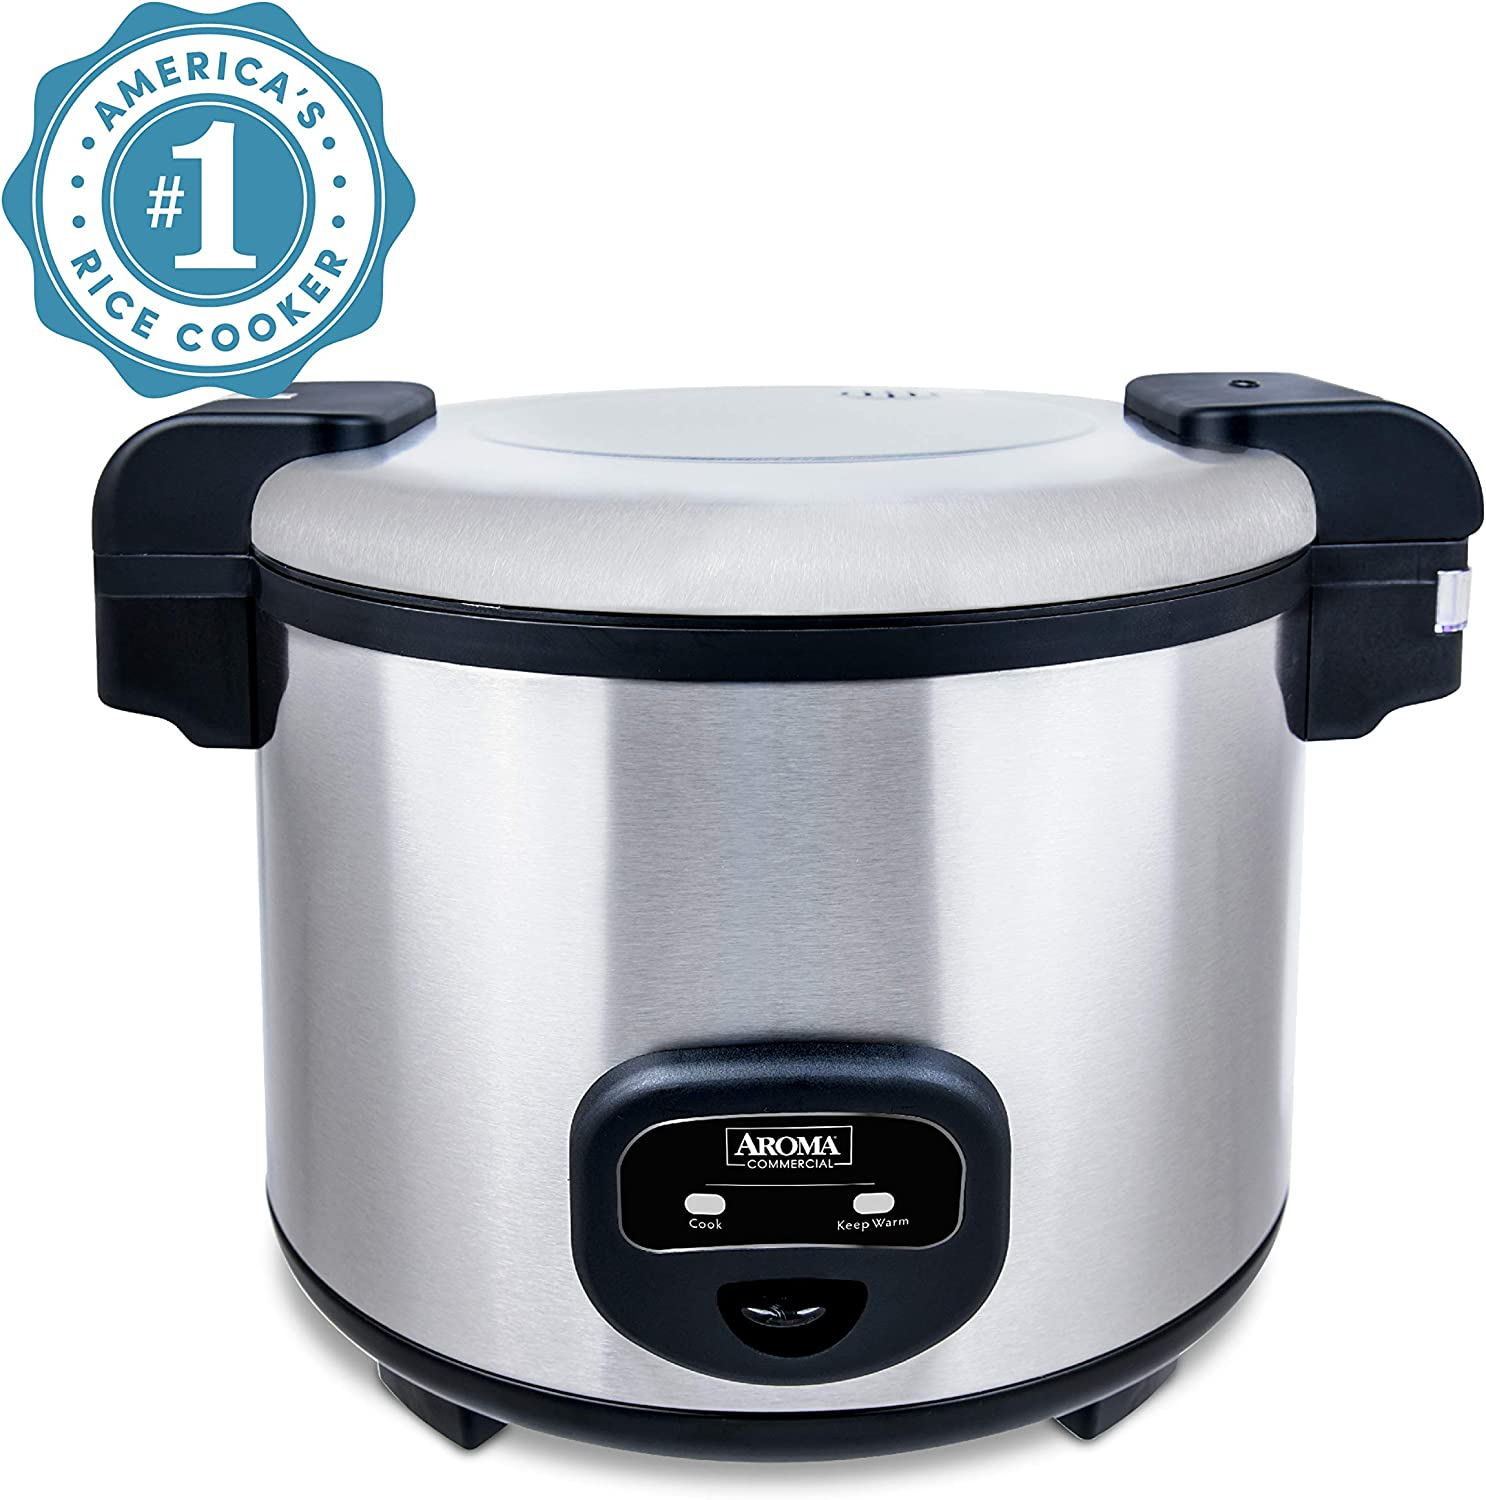 B003DYZYN8 Aroma Housewares 60-Cup (Cooked) (30-Cup UNCOOKED) Commercial Rice Cooker, Stainless Steel Exterior (ARC-1130S) 81W3nitOinL.SL1500_